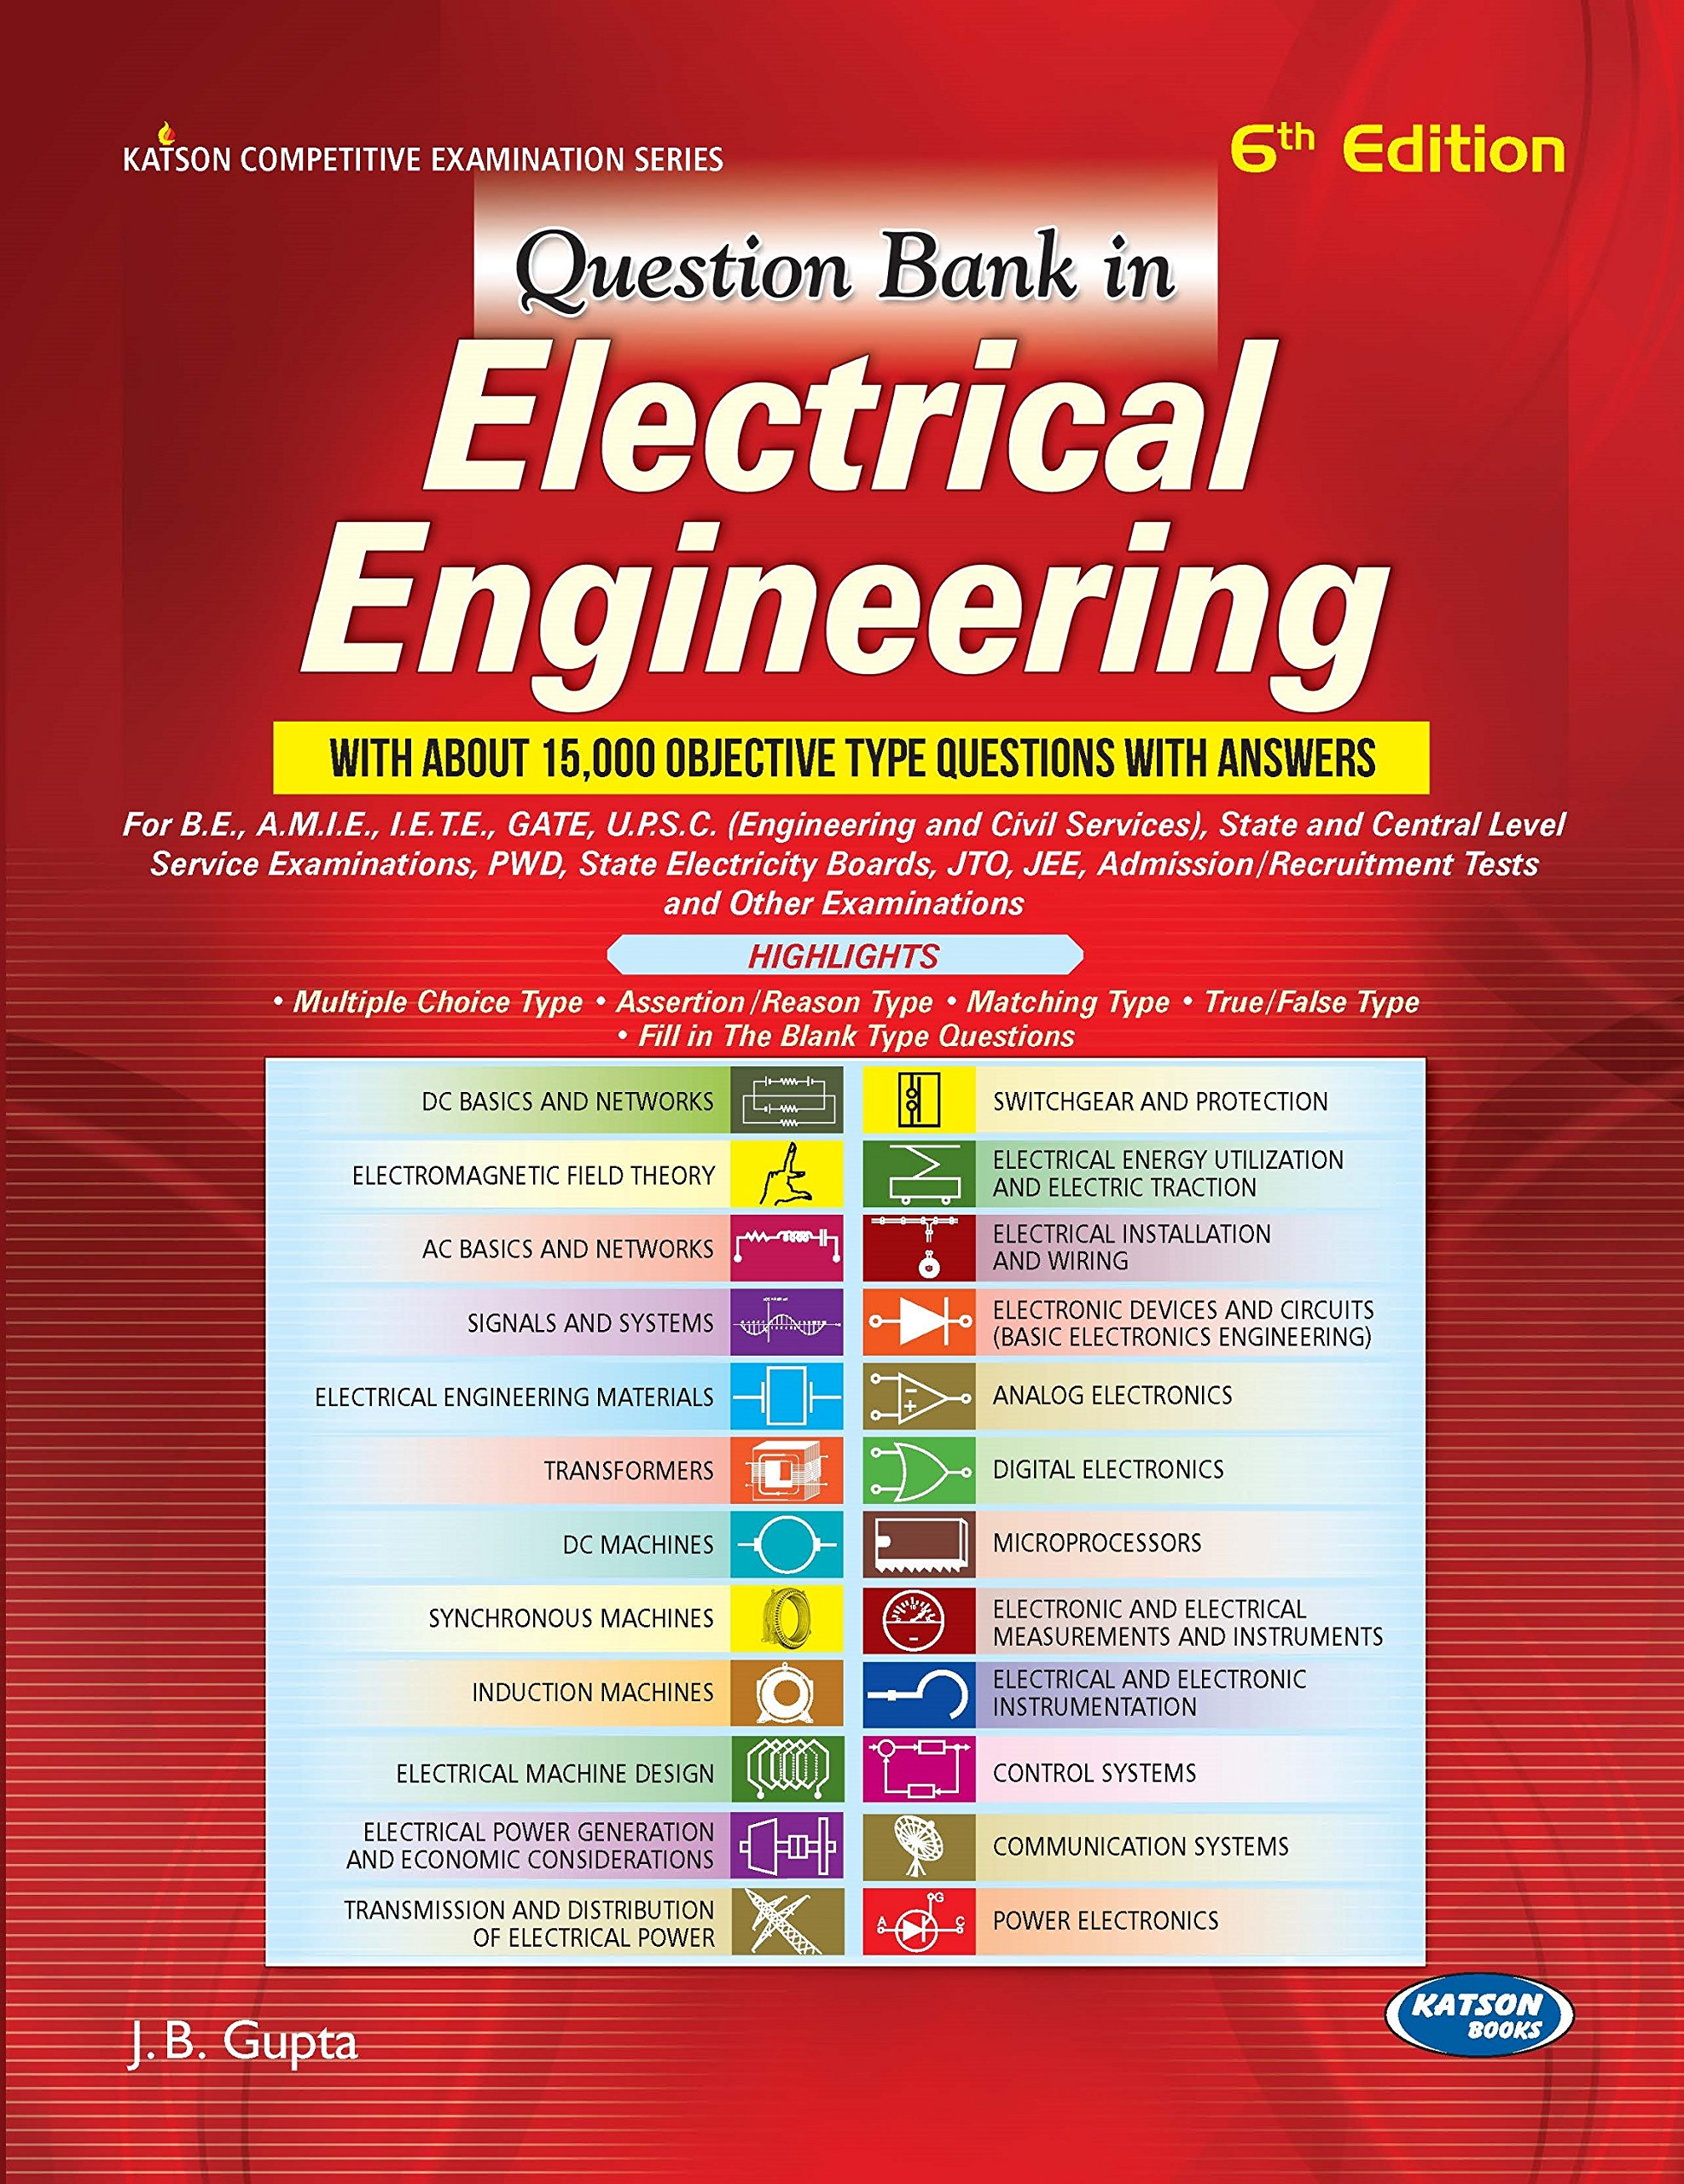 Electrical House Wiring Books Free Download Schematic Diagrams Home Book Pdf Trusted U2022 Holt